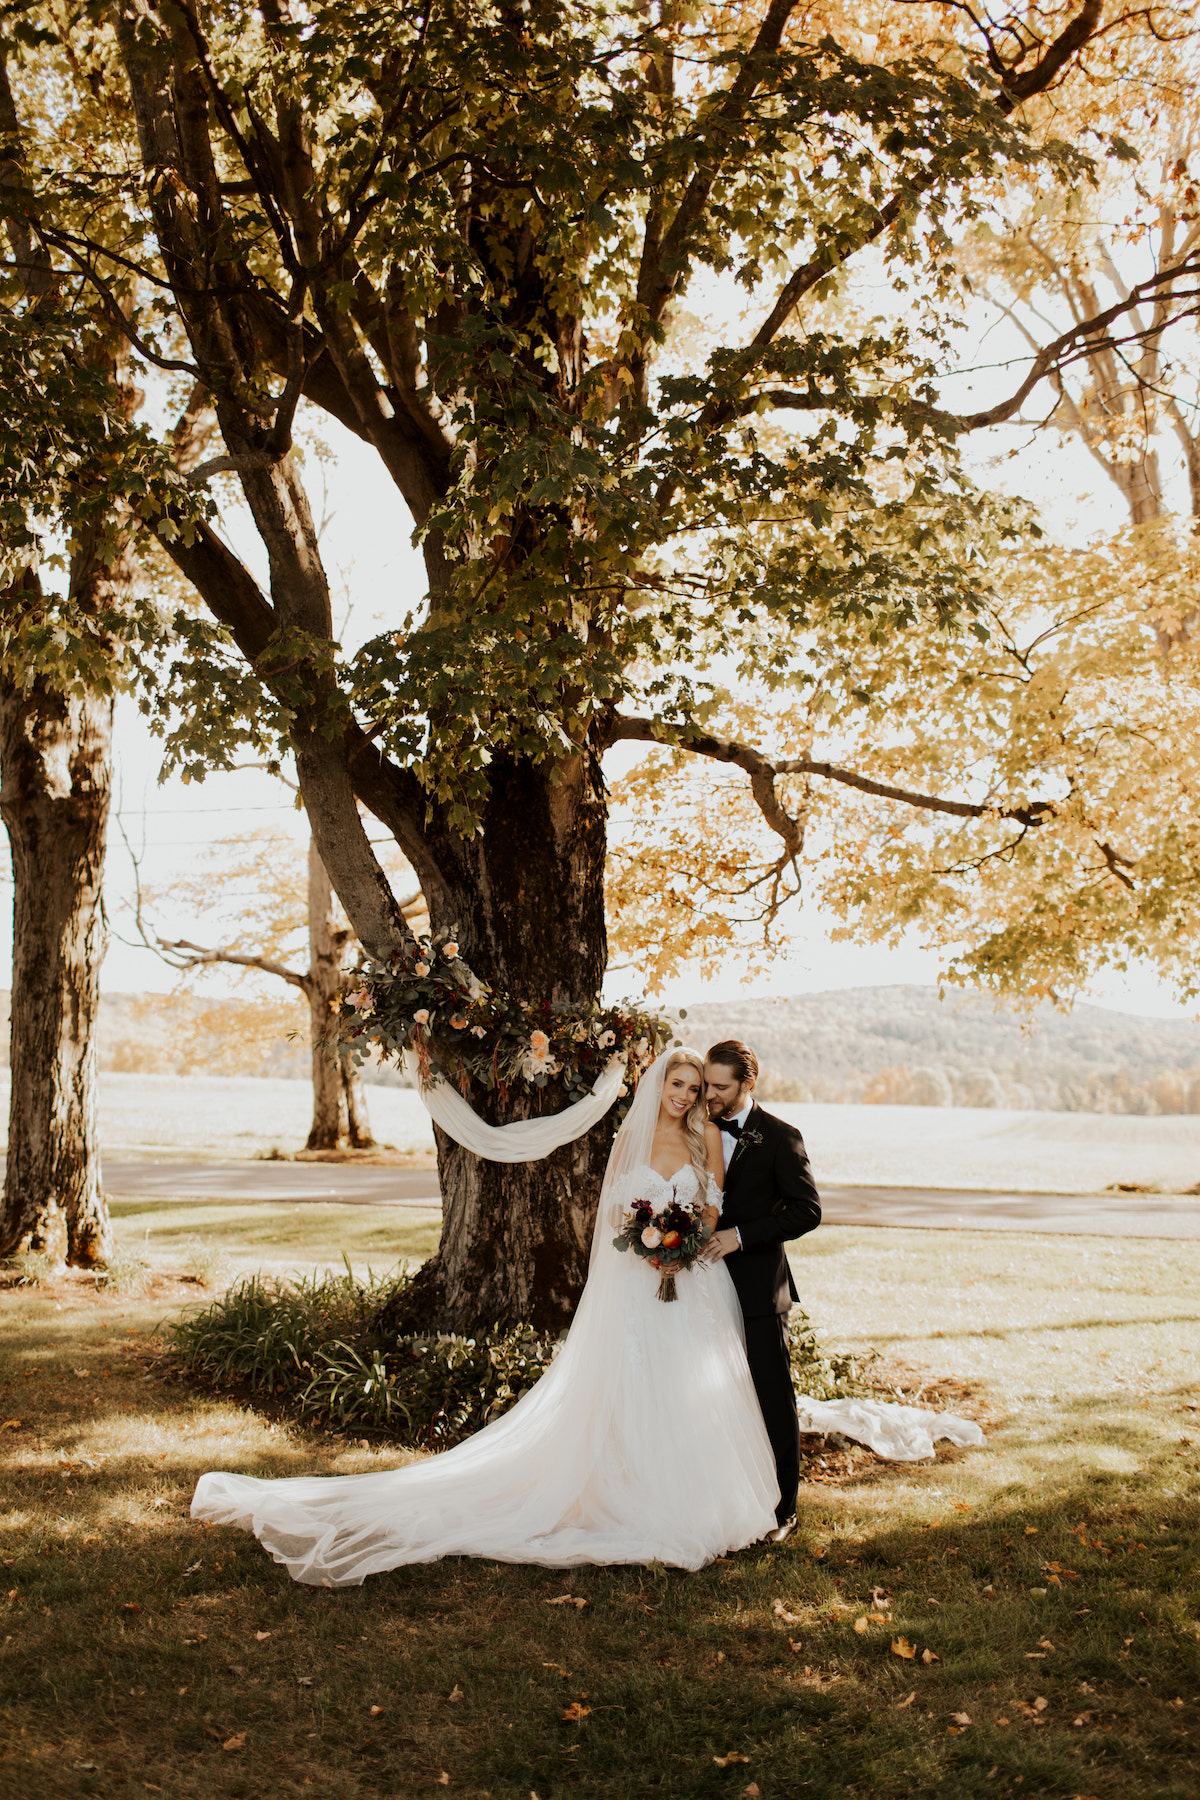 Katies Bliss Wedding Photos First Look